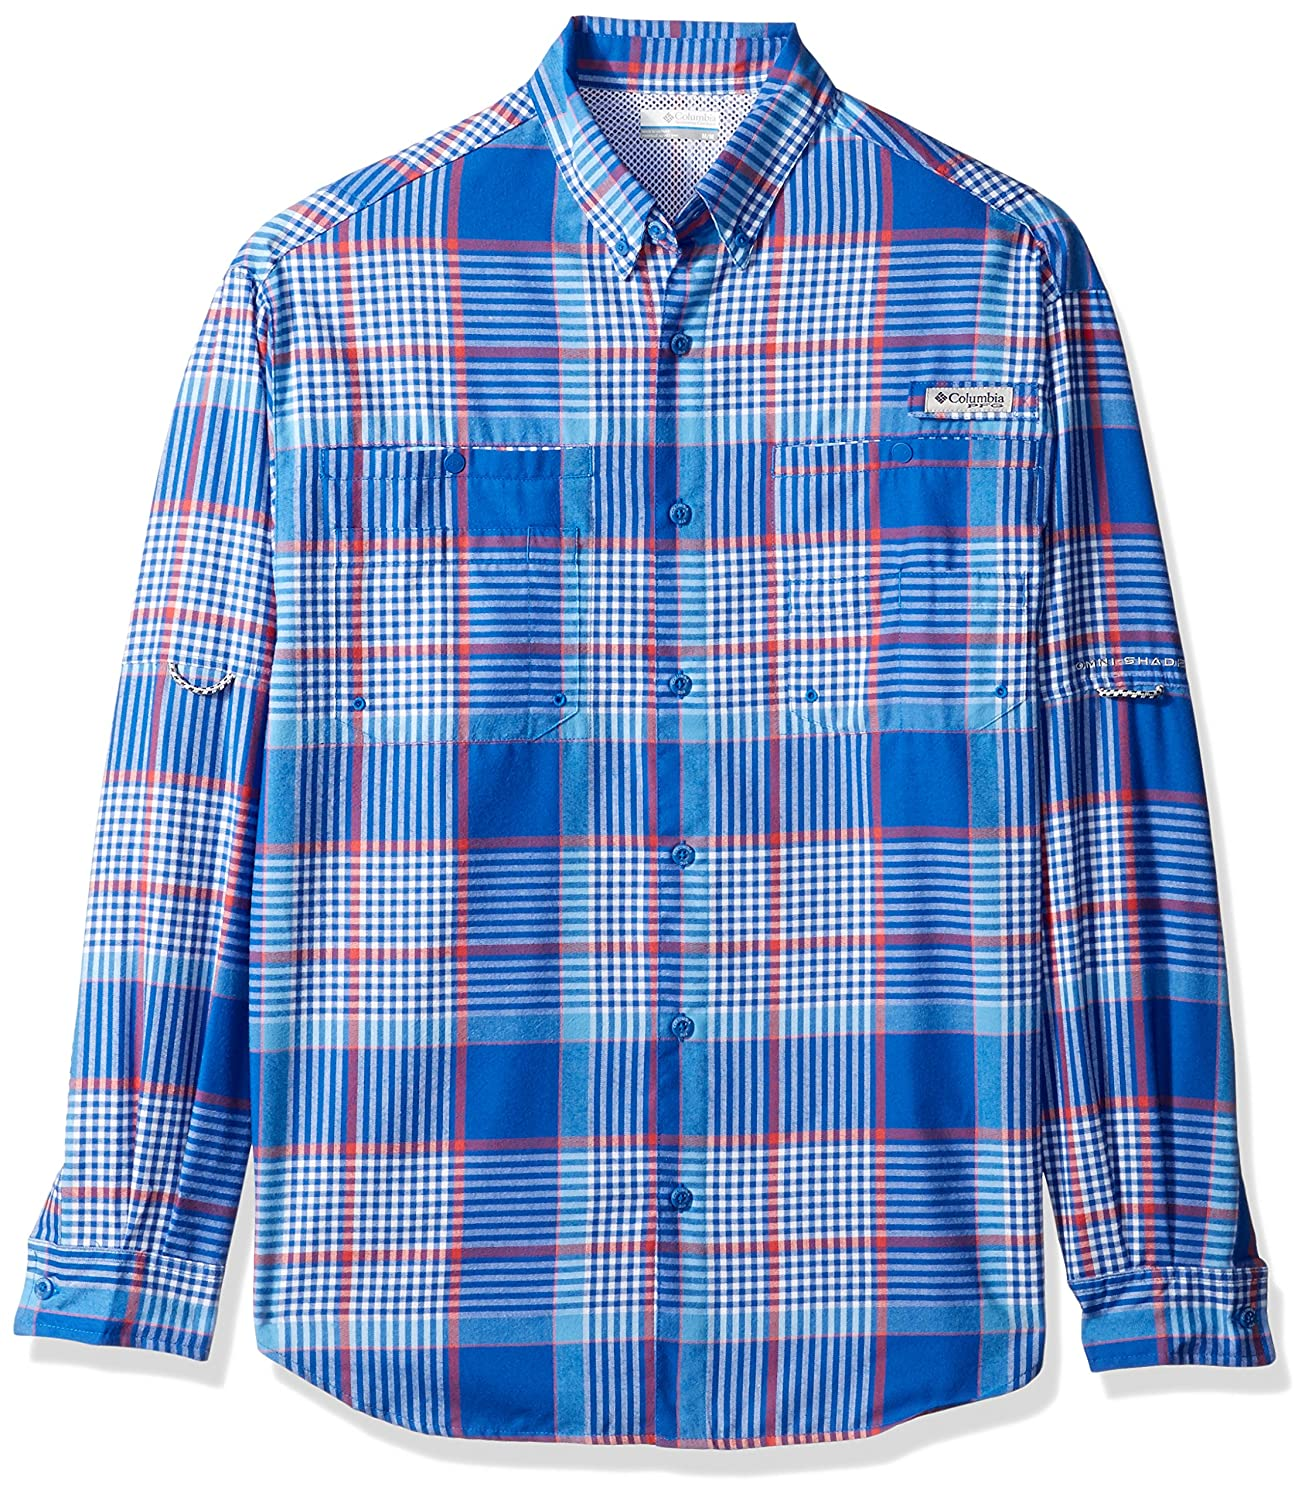 Columbia Men's Tamiami Flannel Long Sleeve Shirt, Vivid Blau Plaid, Small